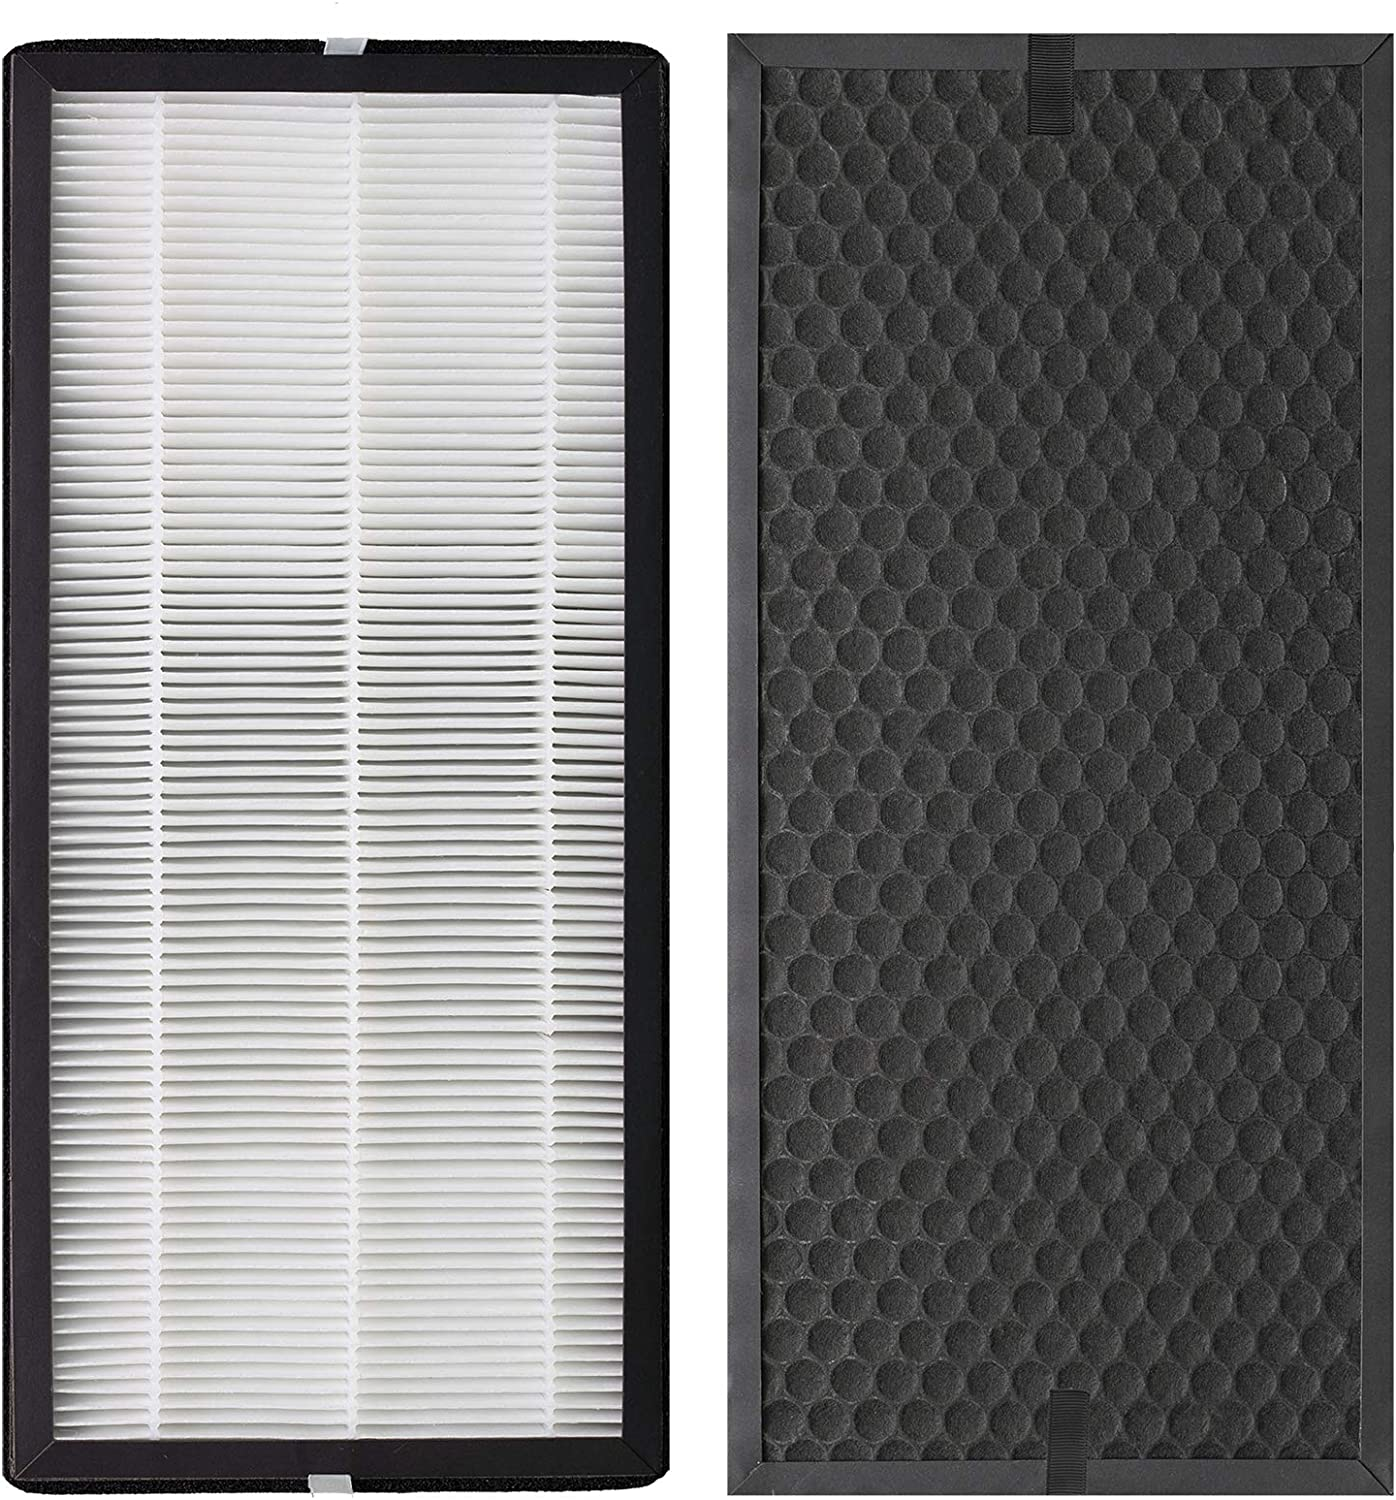 XD6065 Activated Carbon XD6075 True Manufacturer regenerated product Filter Replacement C HEPA Outlet SALE